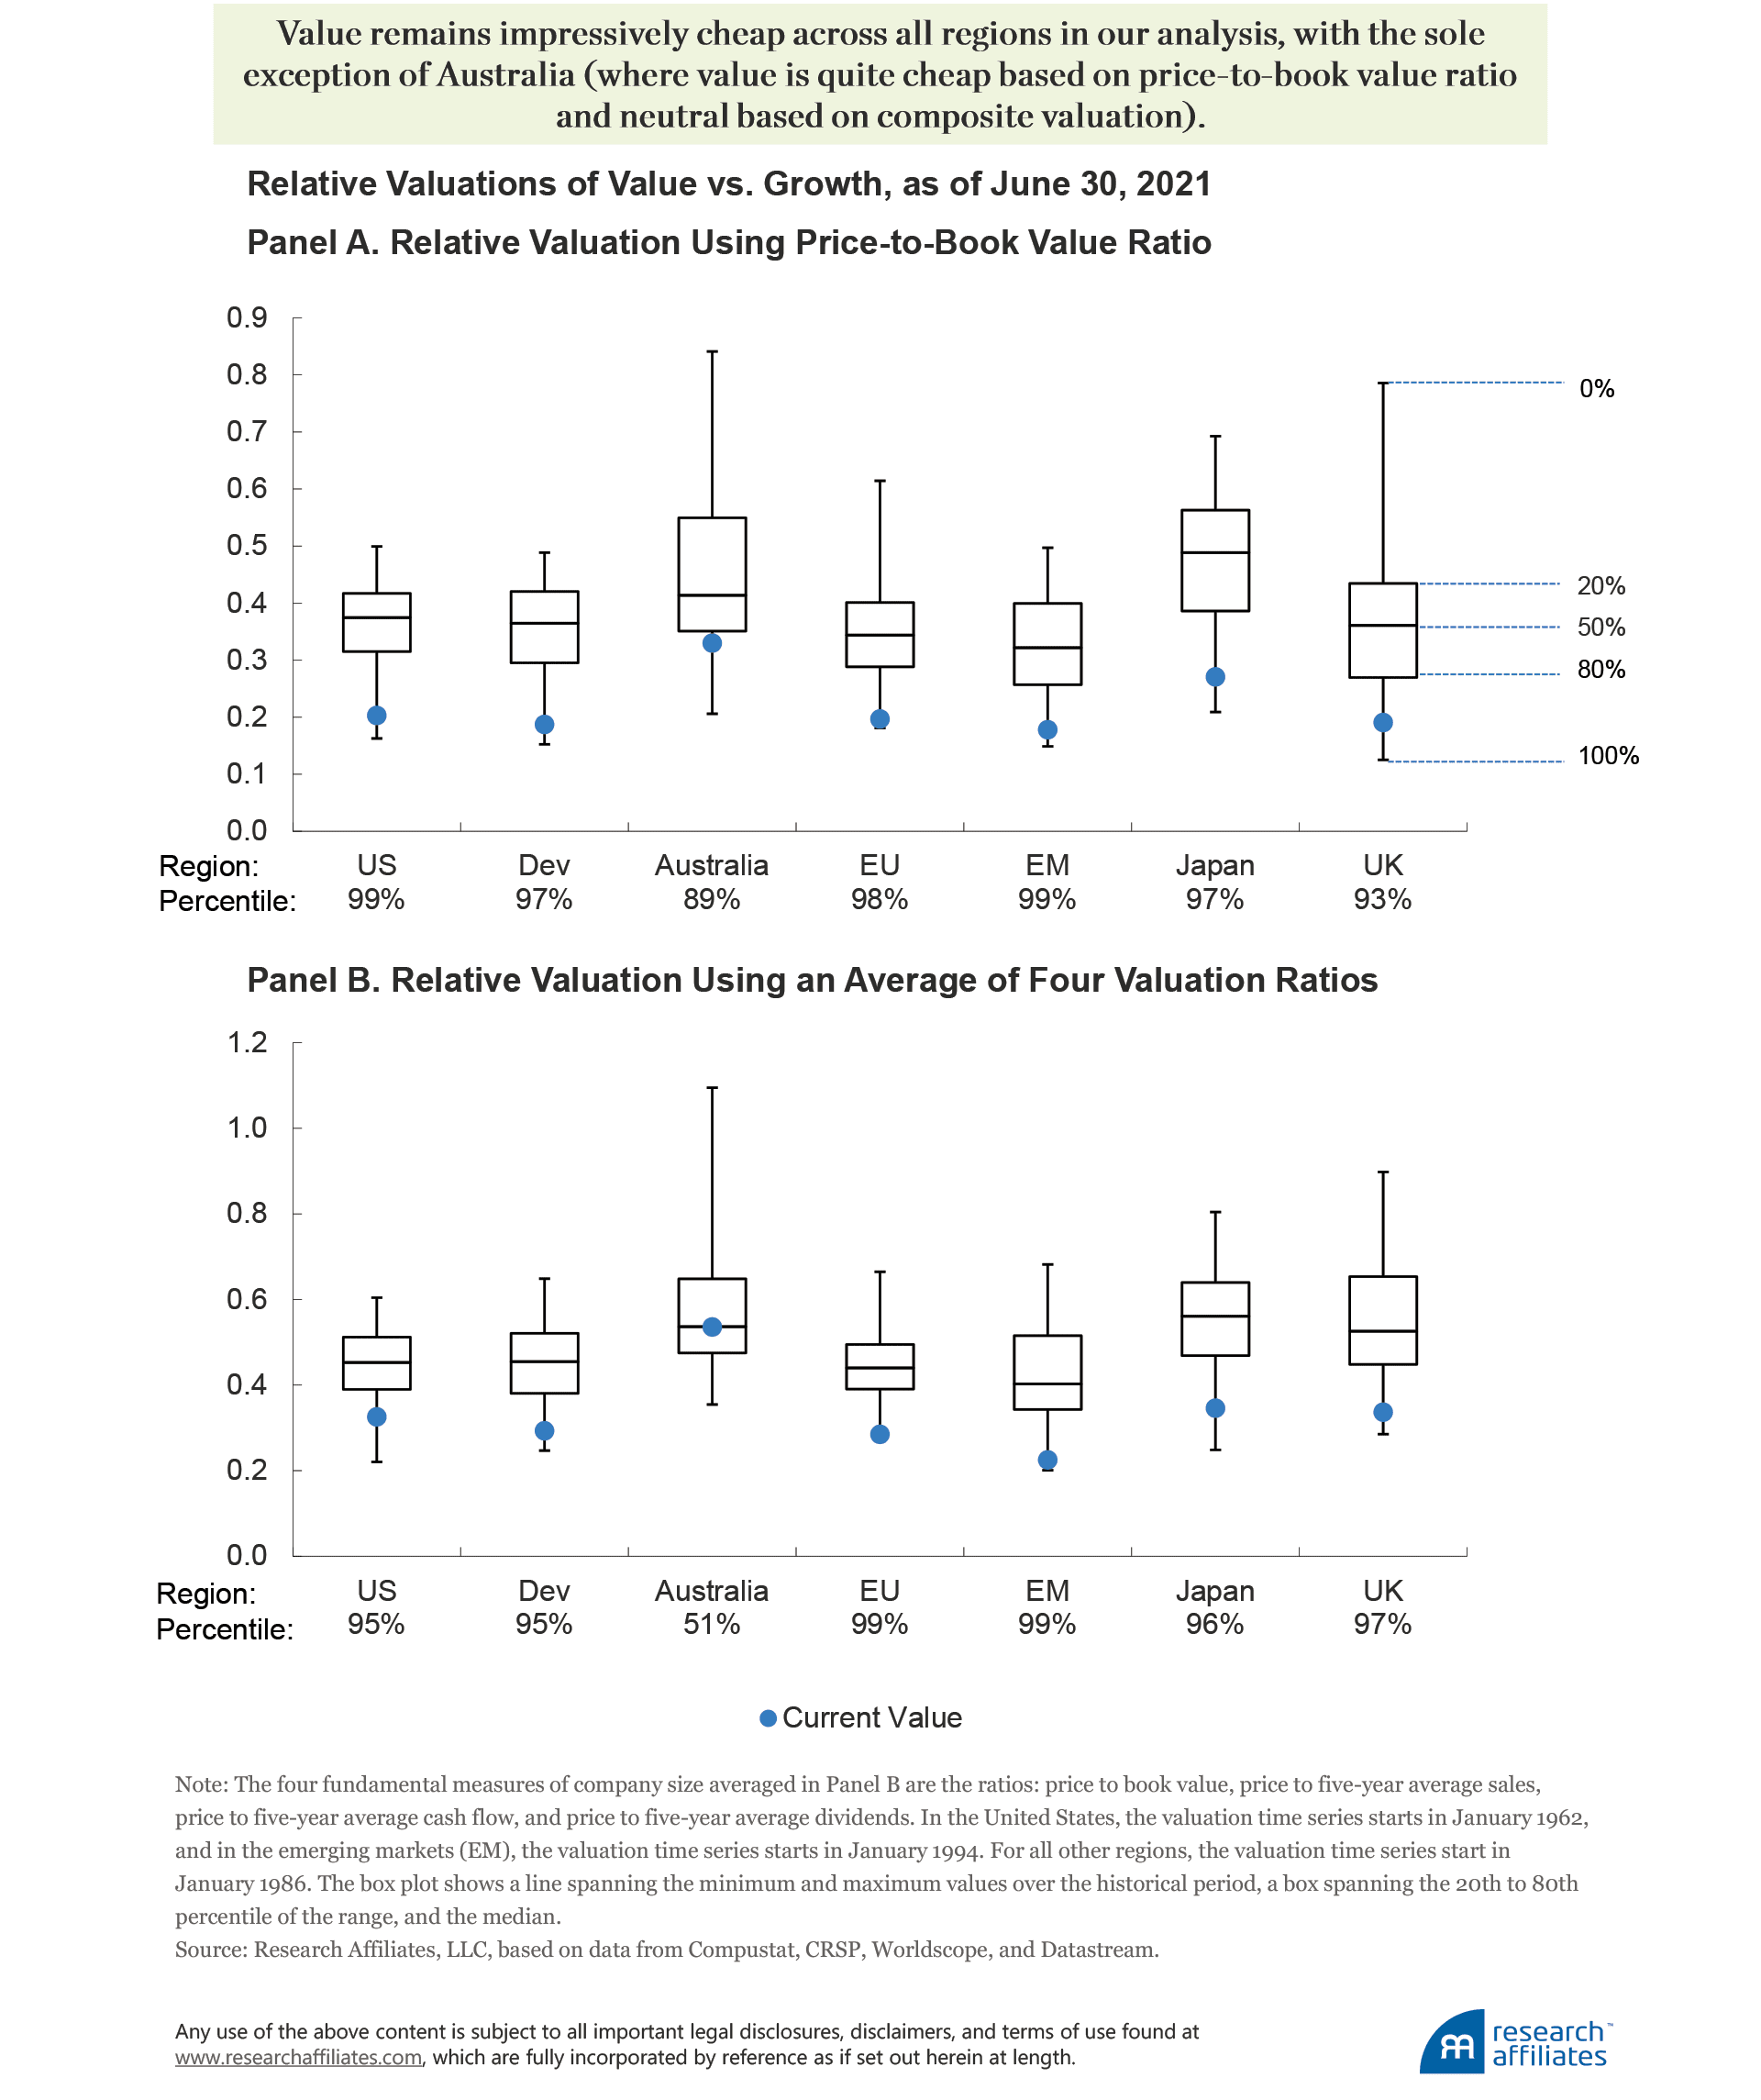 https://www.researchaffiliates.com/content/dam/ra/publications/figures/842-did-i-miss-the-value-turn/842-did-i-miss-the-value-turn-figure-3.png